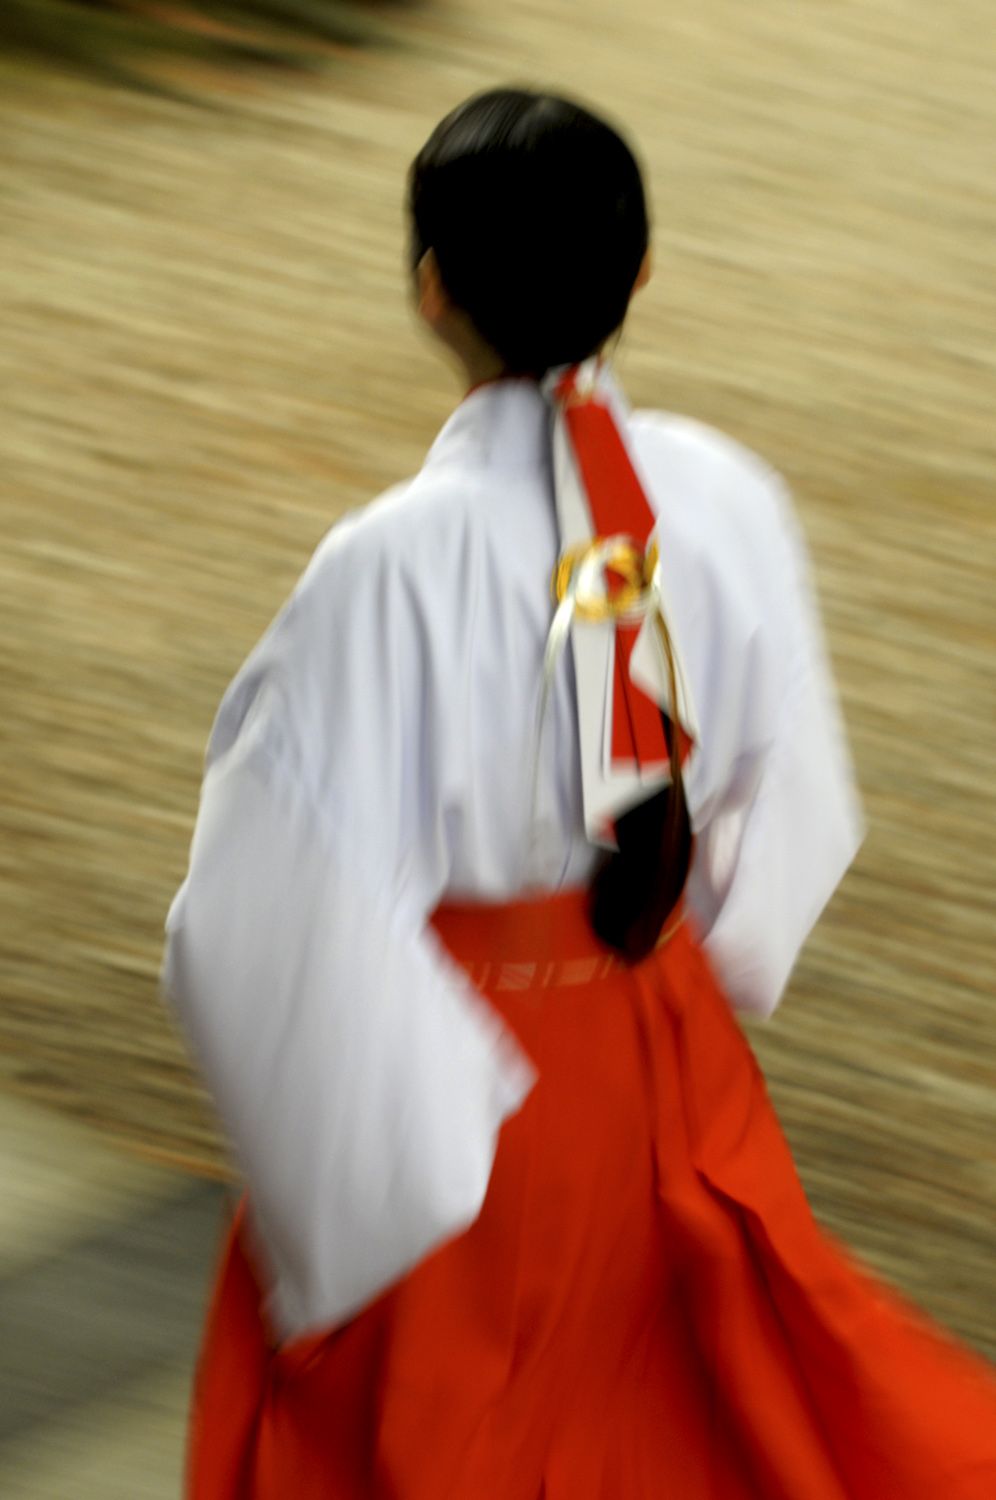 Shrine maiden at the Meiji Shrine Tokyo